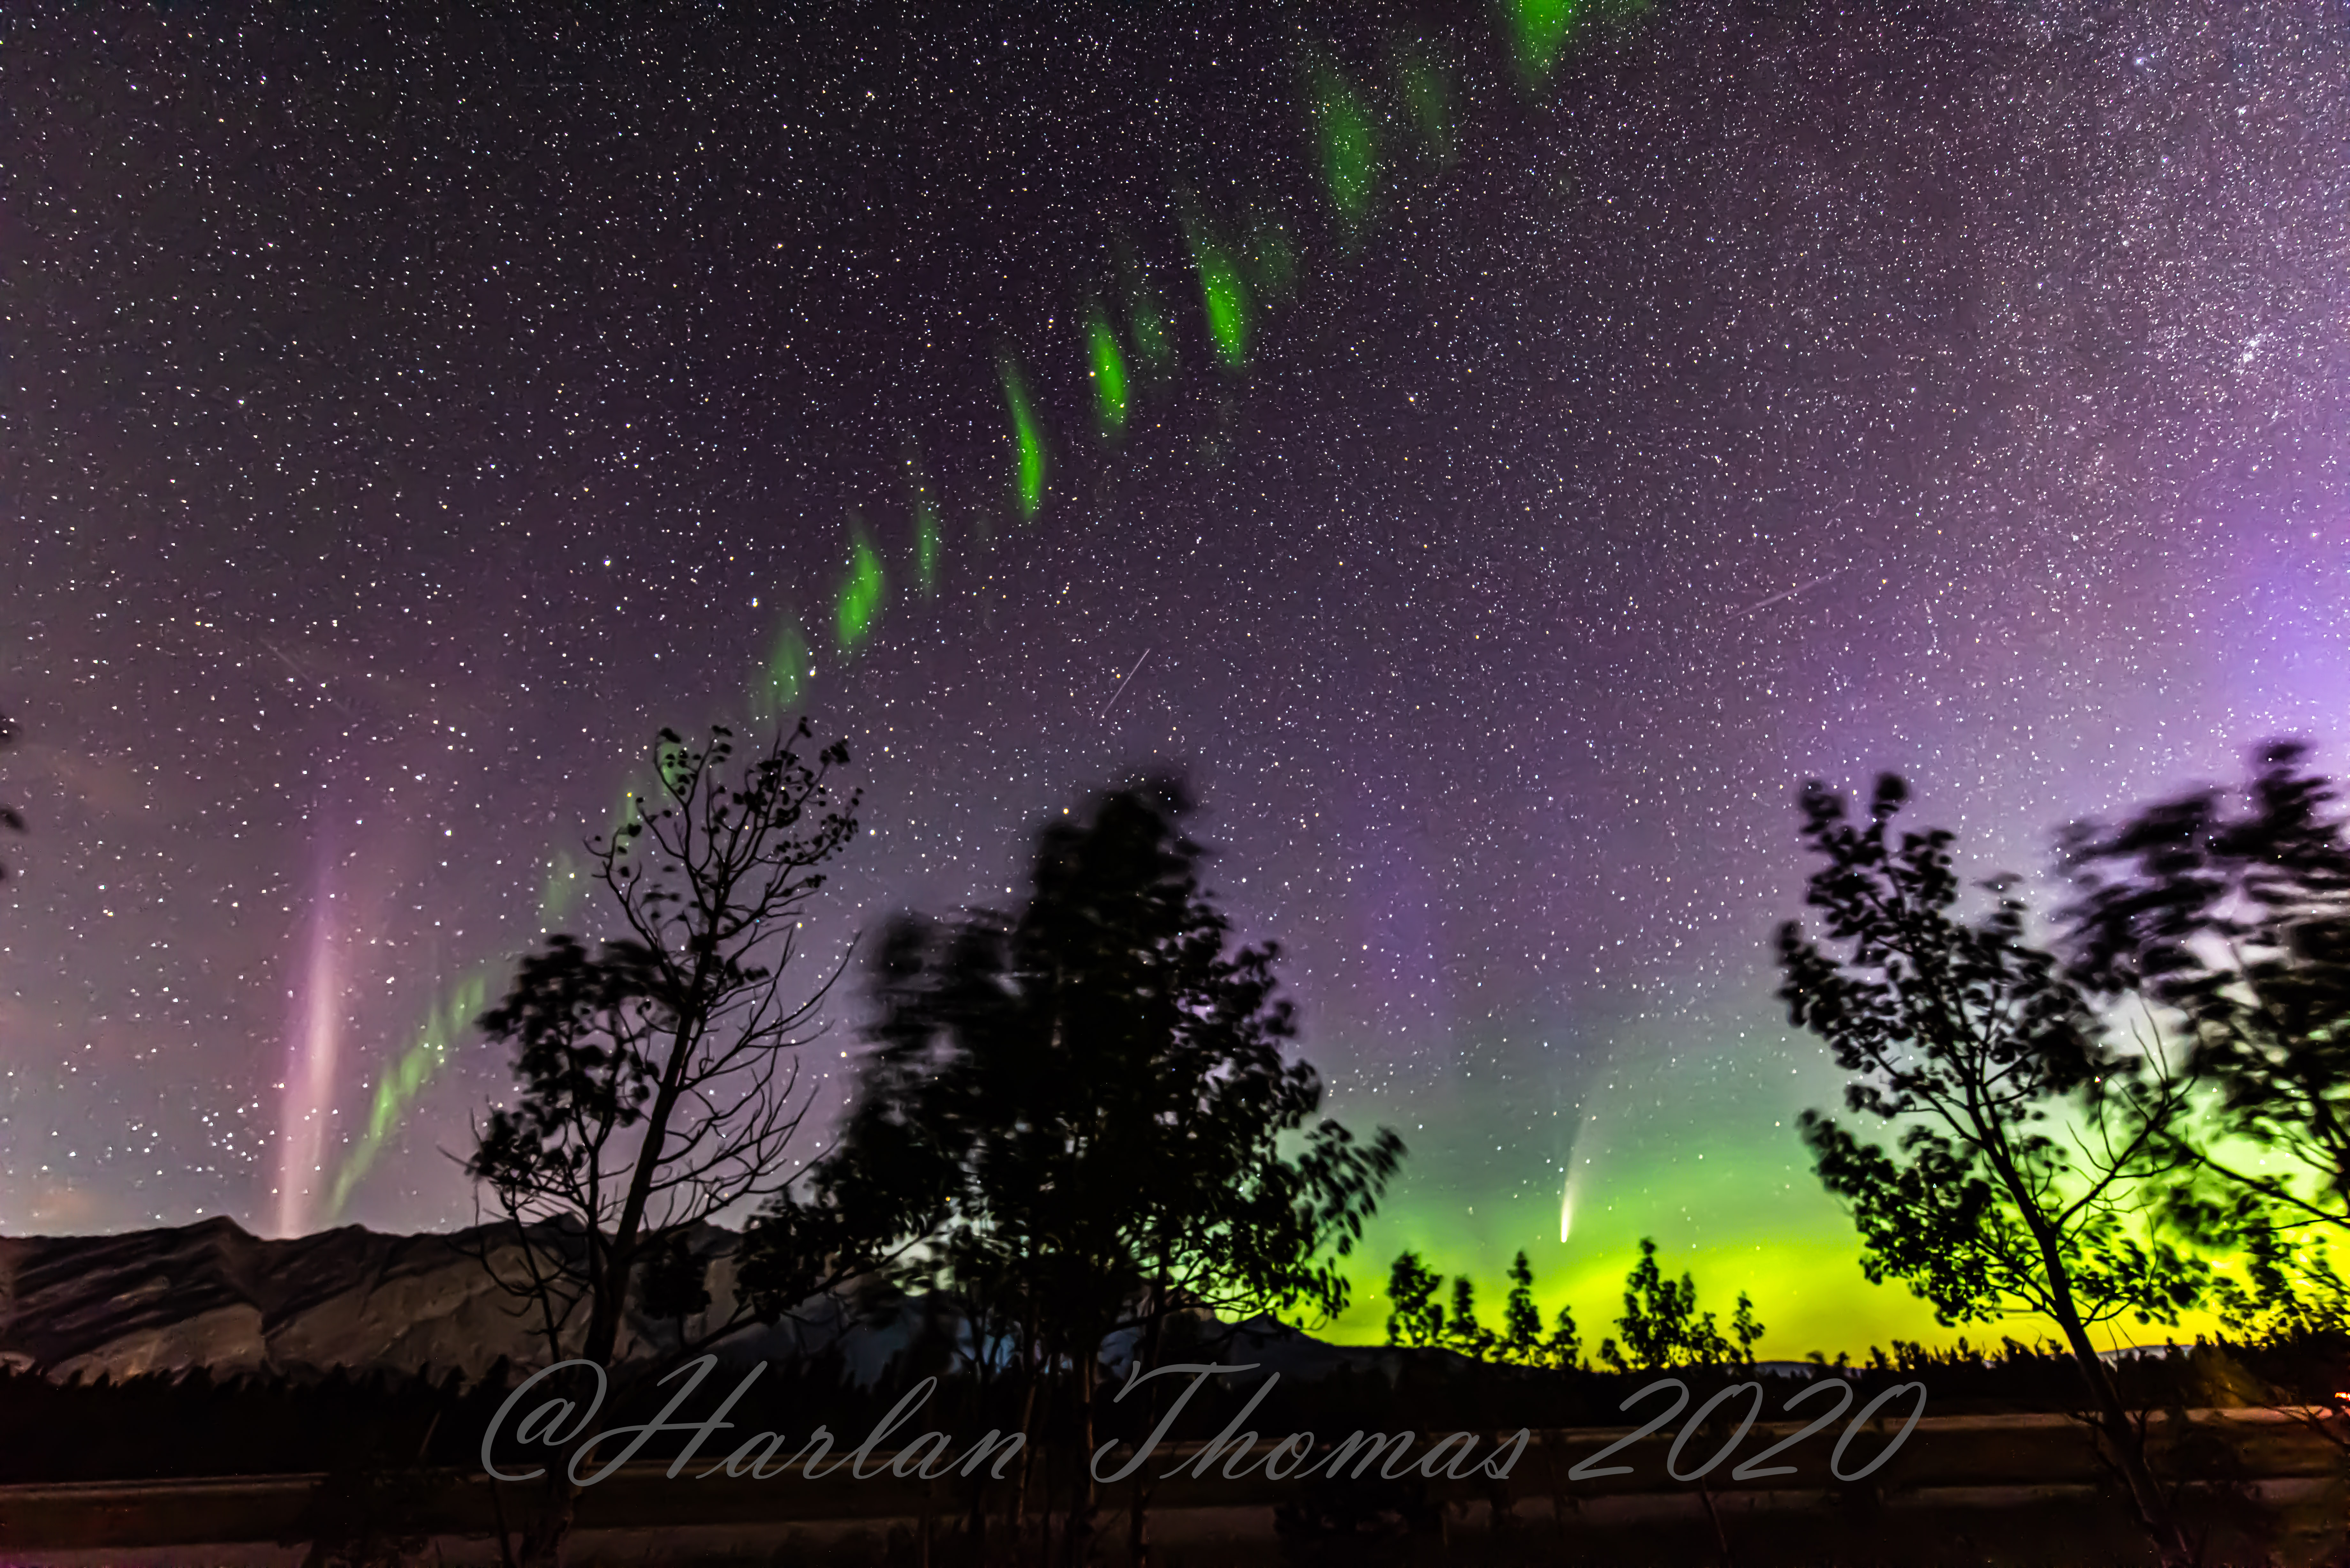 https://spaceweathergallery.com/submissions/pics/h/Harlan-Thomas-HectorsCamp-Aurora-NLC-NEOWISE-071420-11_1594762454.jpg